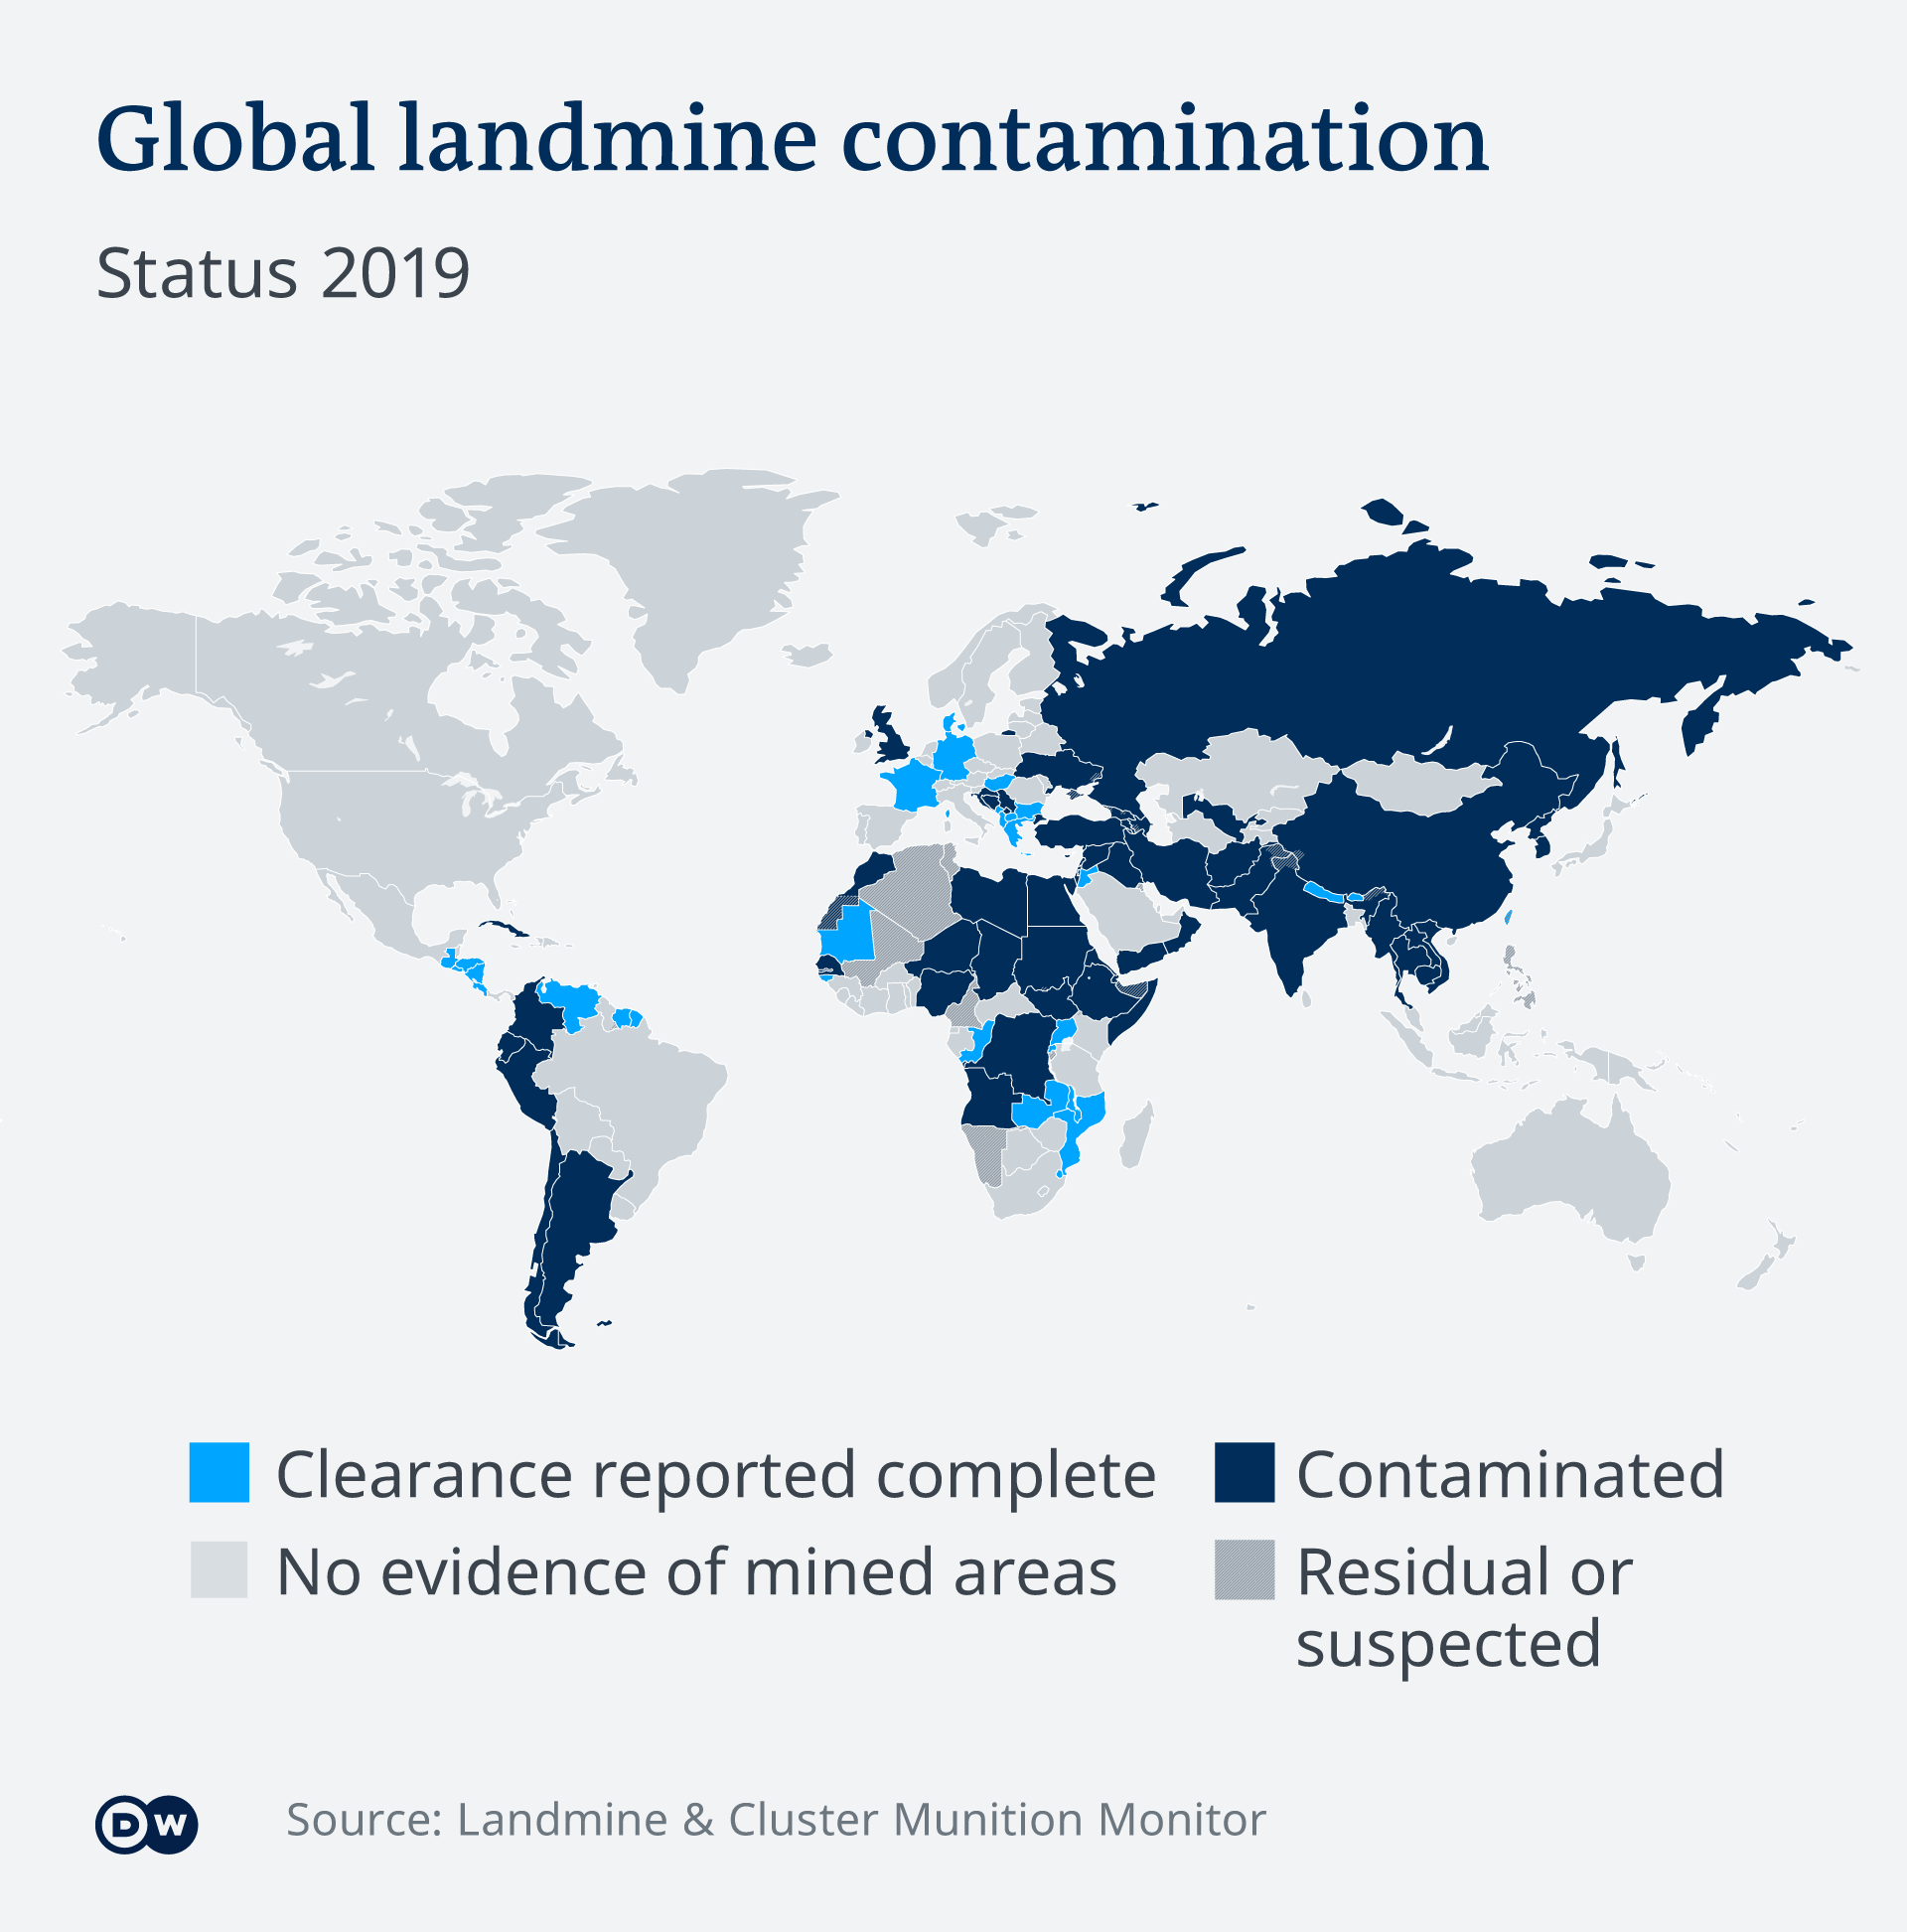 A graphic showing where landmines are still believed to be present, as of 2019. Data from the Landmine and Cluster Munition Monitor organization.